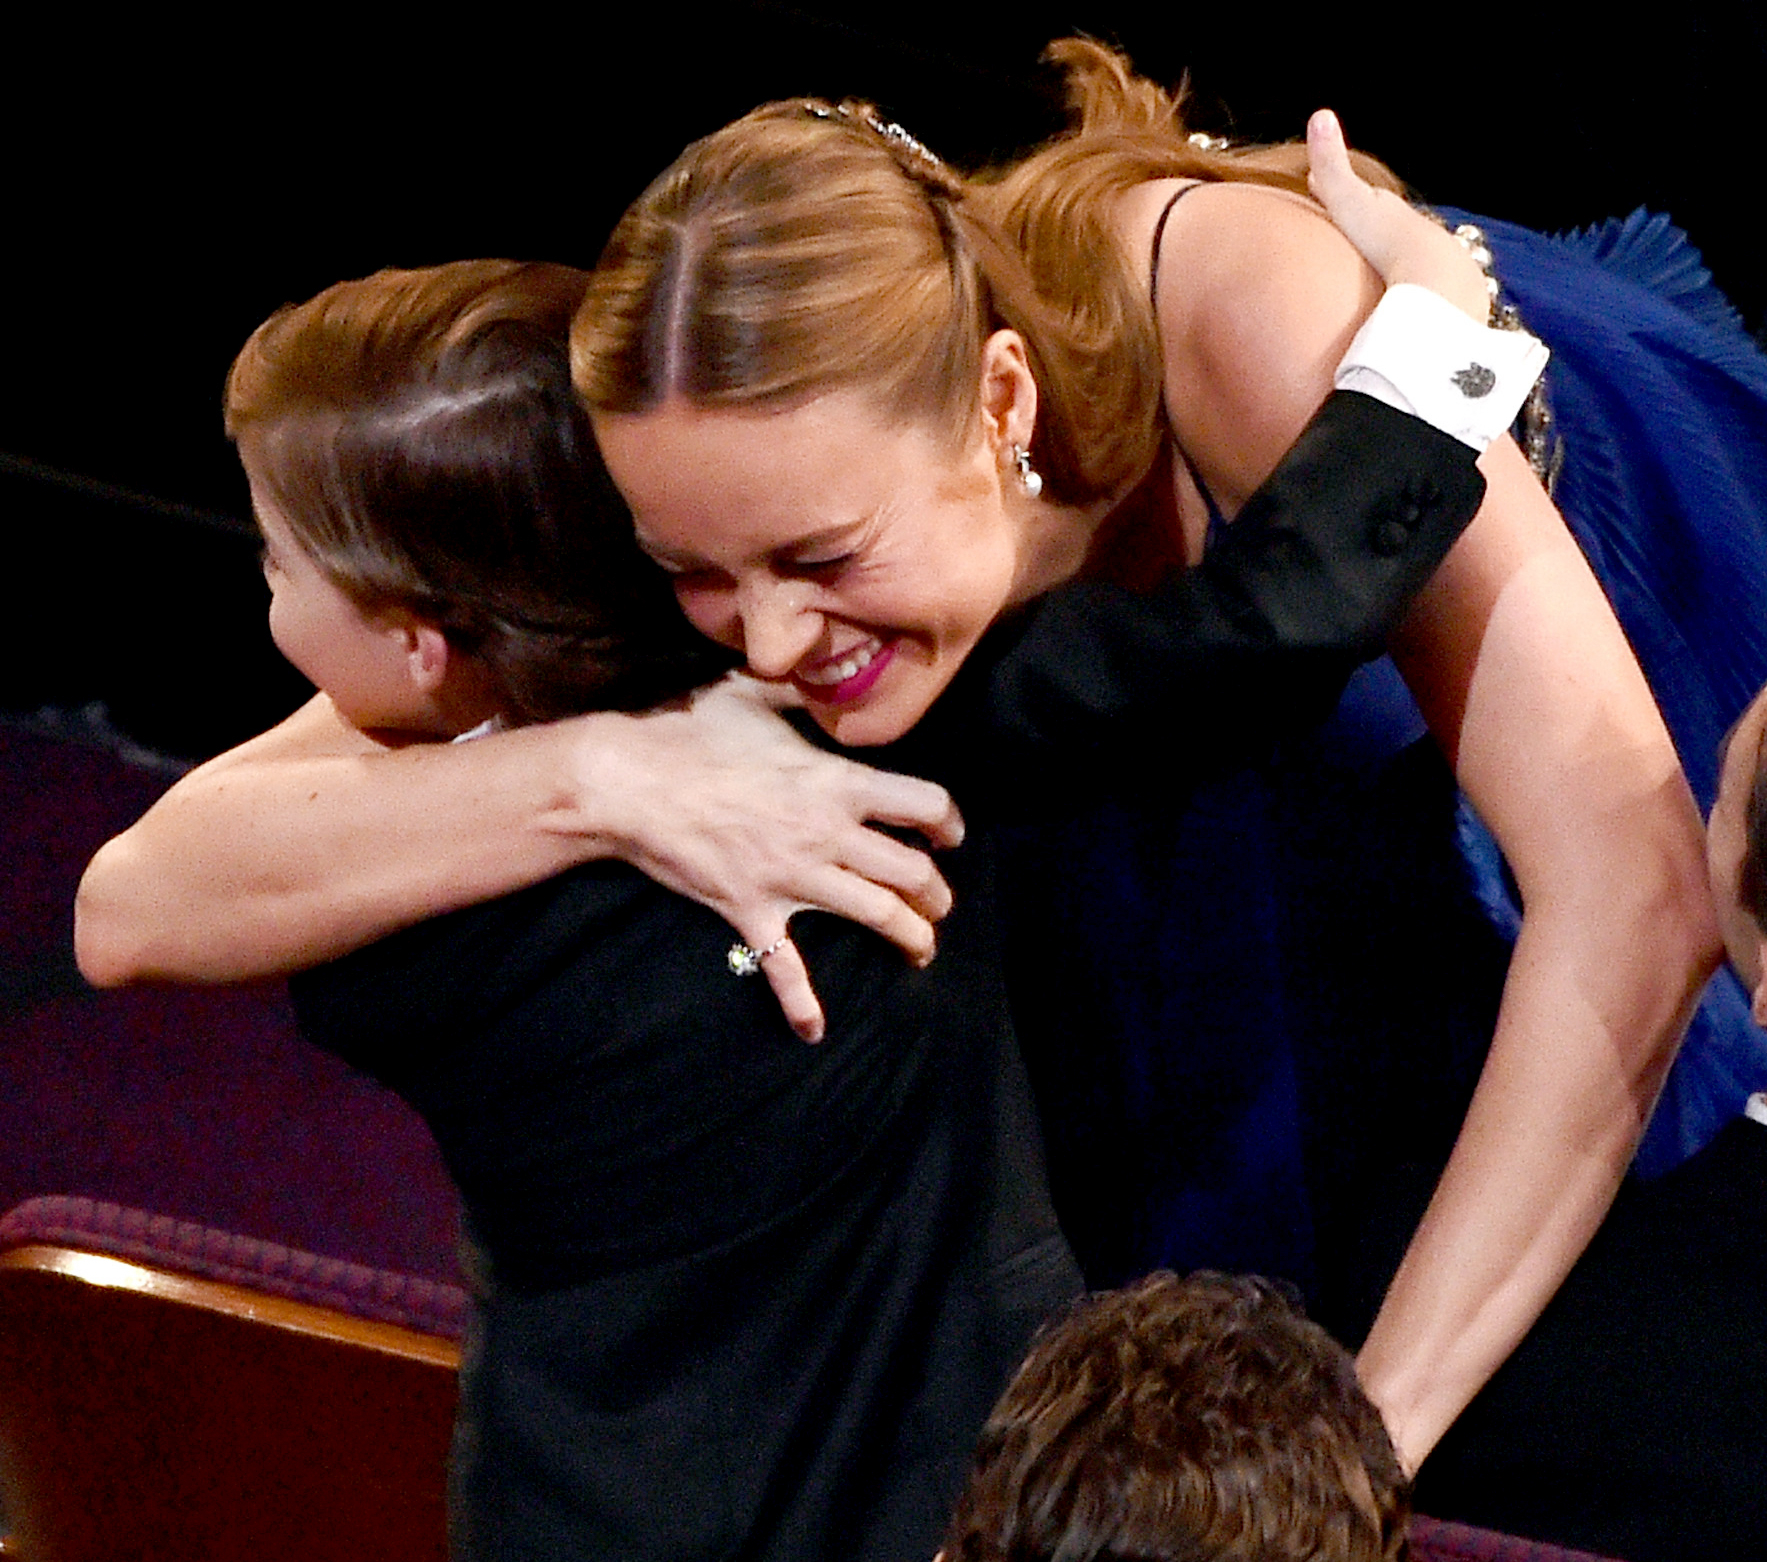 Brie Larson embraces actor Jacob Tremblay after winning the Best Actress award for 'Room' during the 88th Annual Academy Awards.